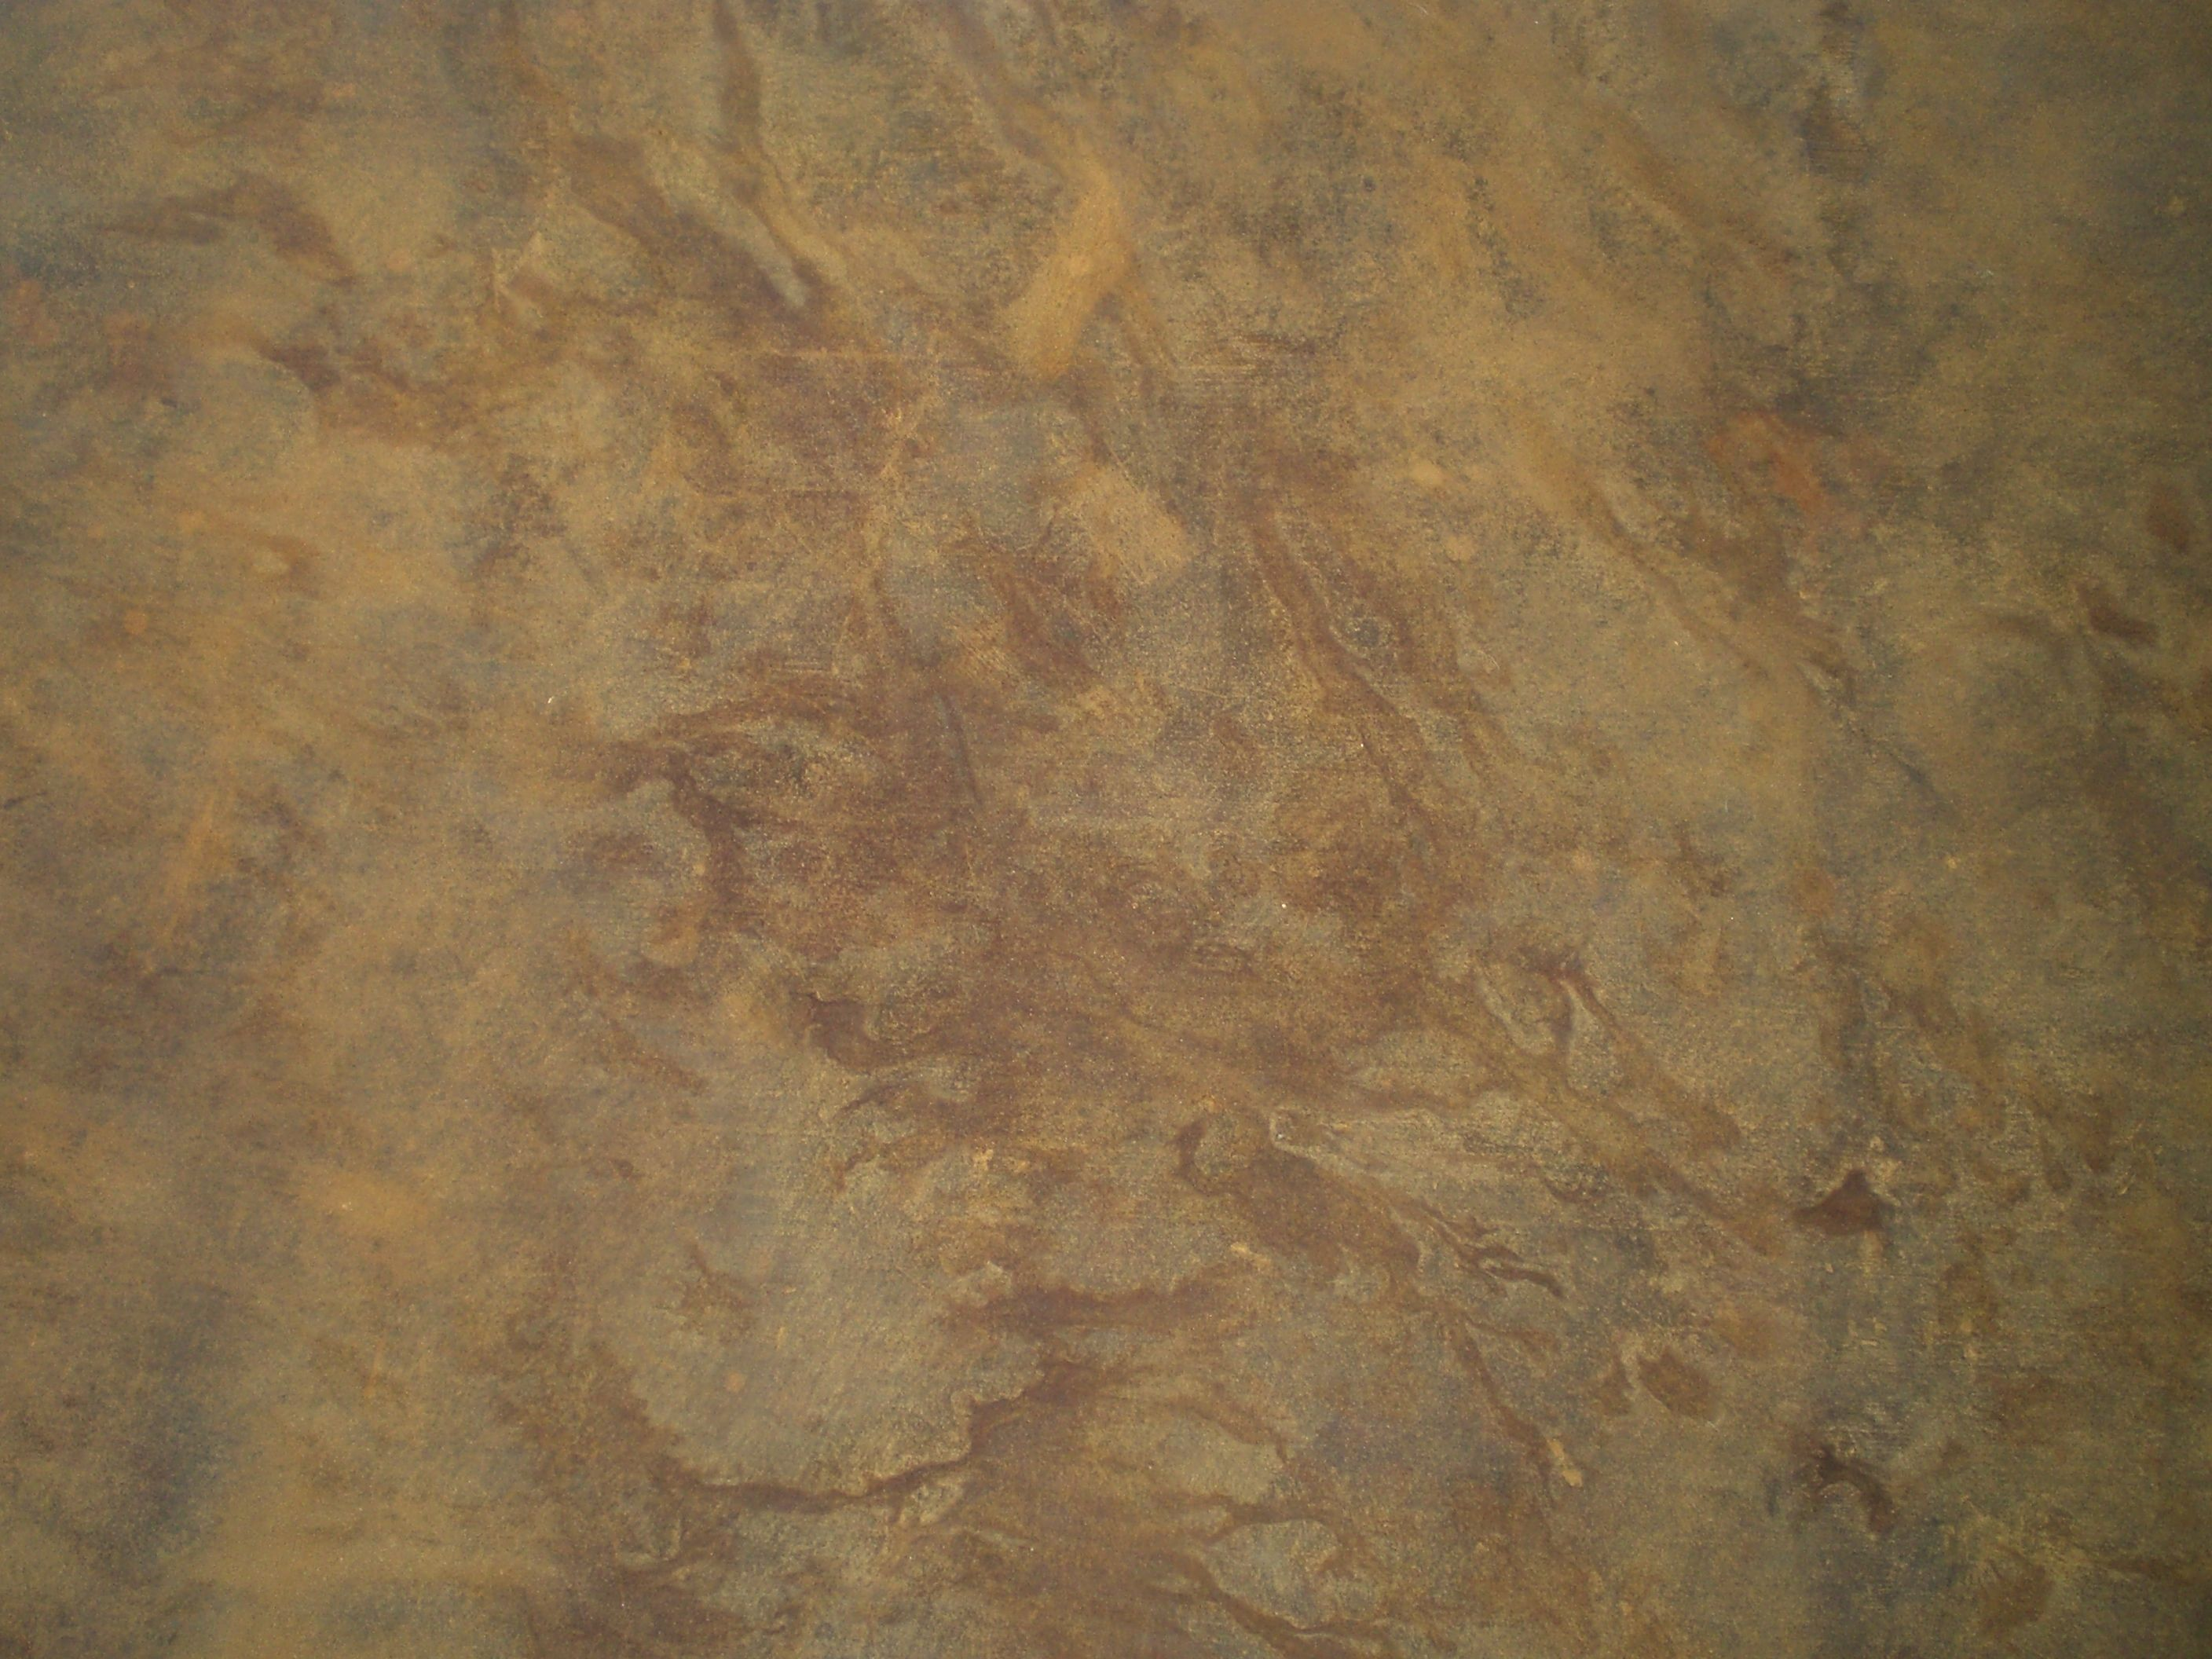 Stained Concrete Floors Acid Stained Concrete Floor